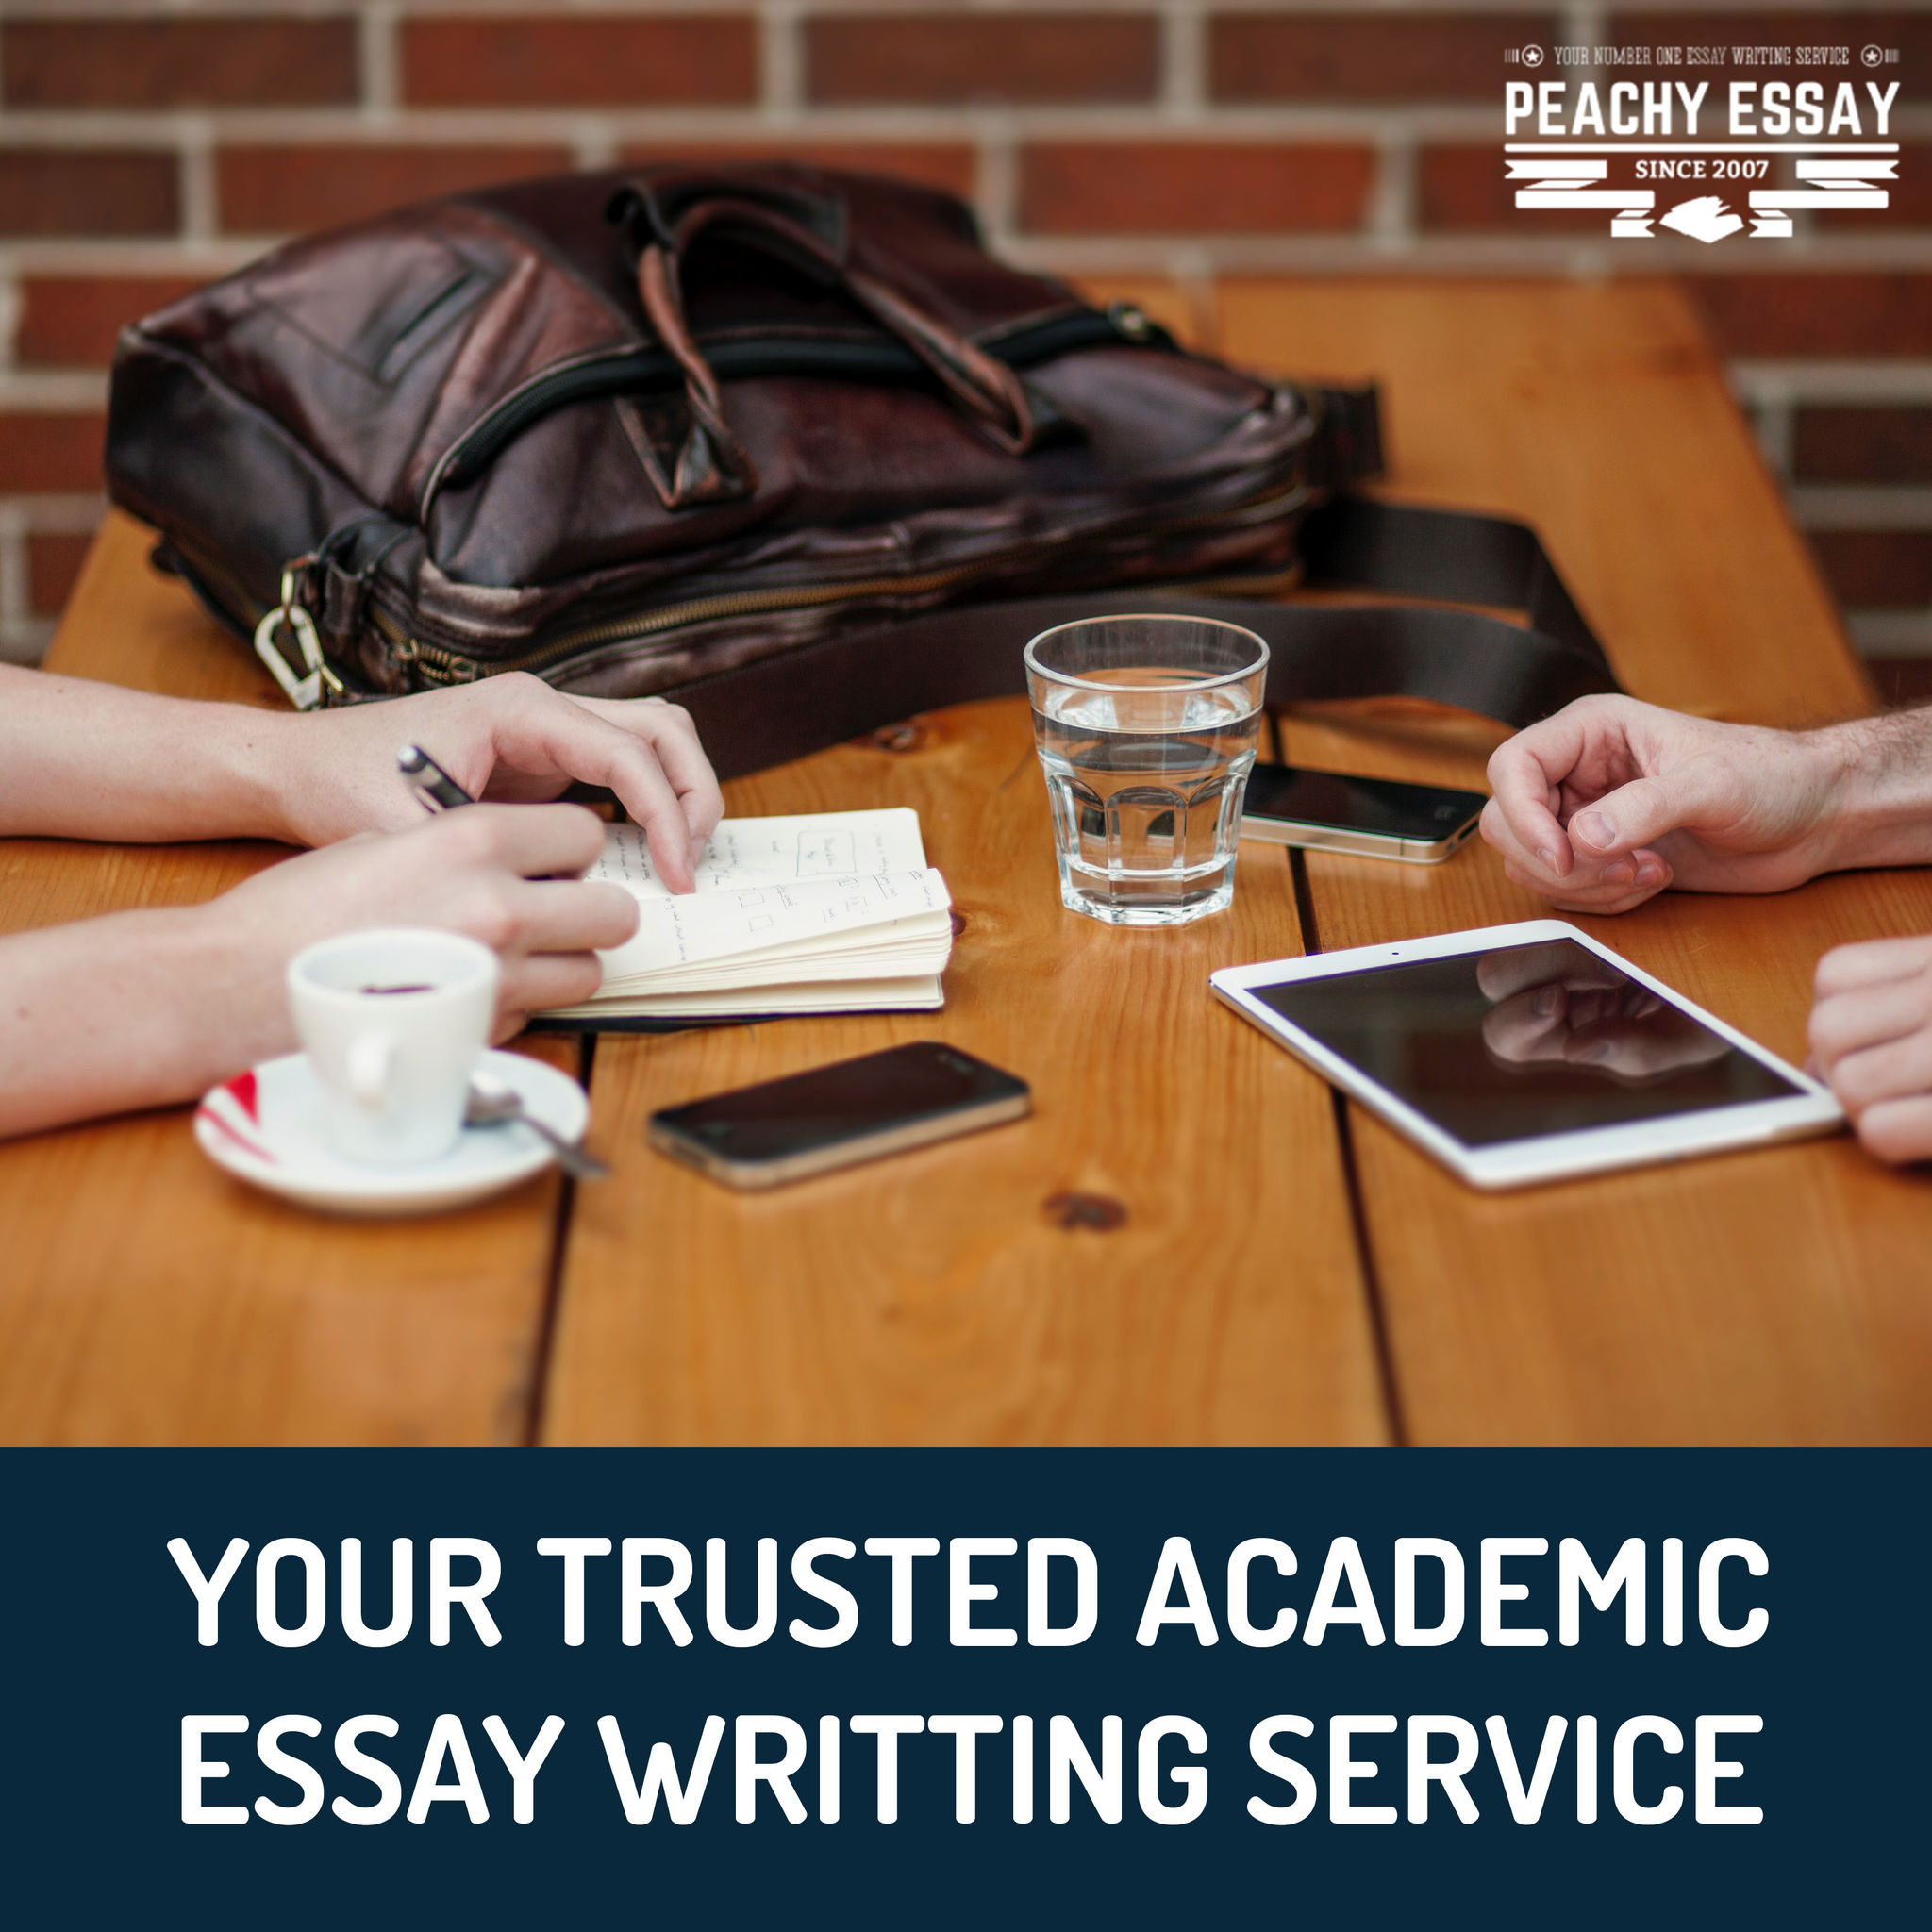 YOUR NUMBER ONE ESSAY WRITING SERVICE